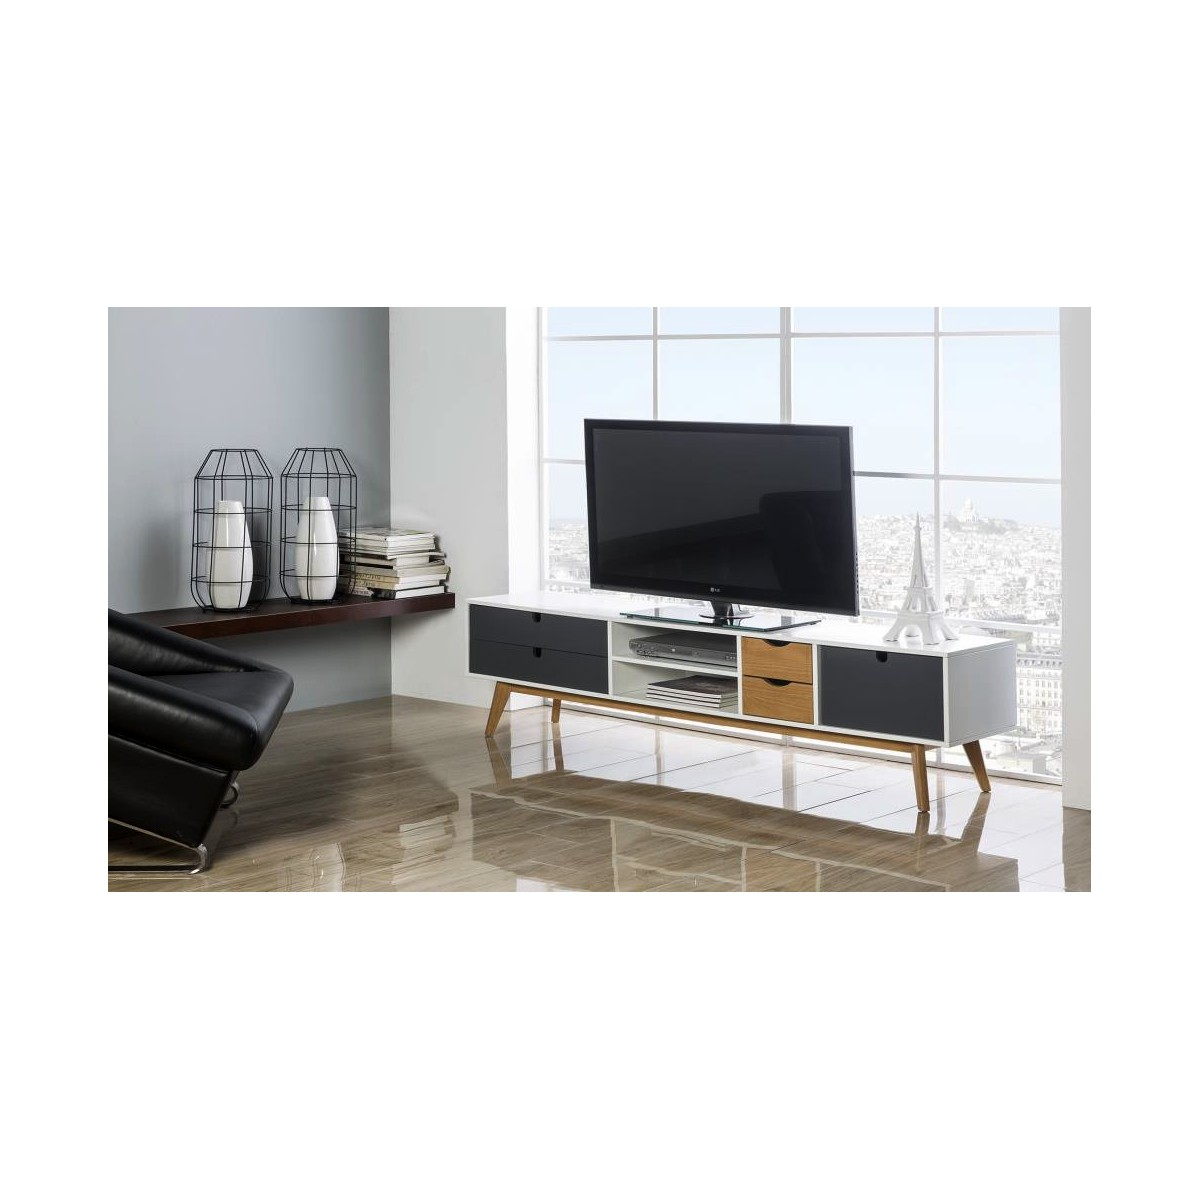 Meubles Tv Lemobilier Ma # Table Basse Et Meuble Tv Assortis